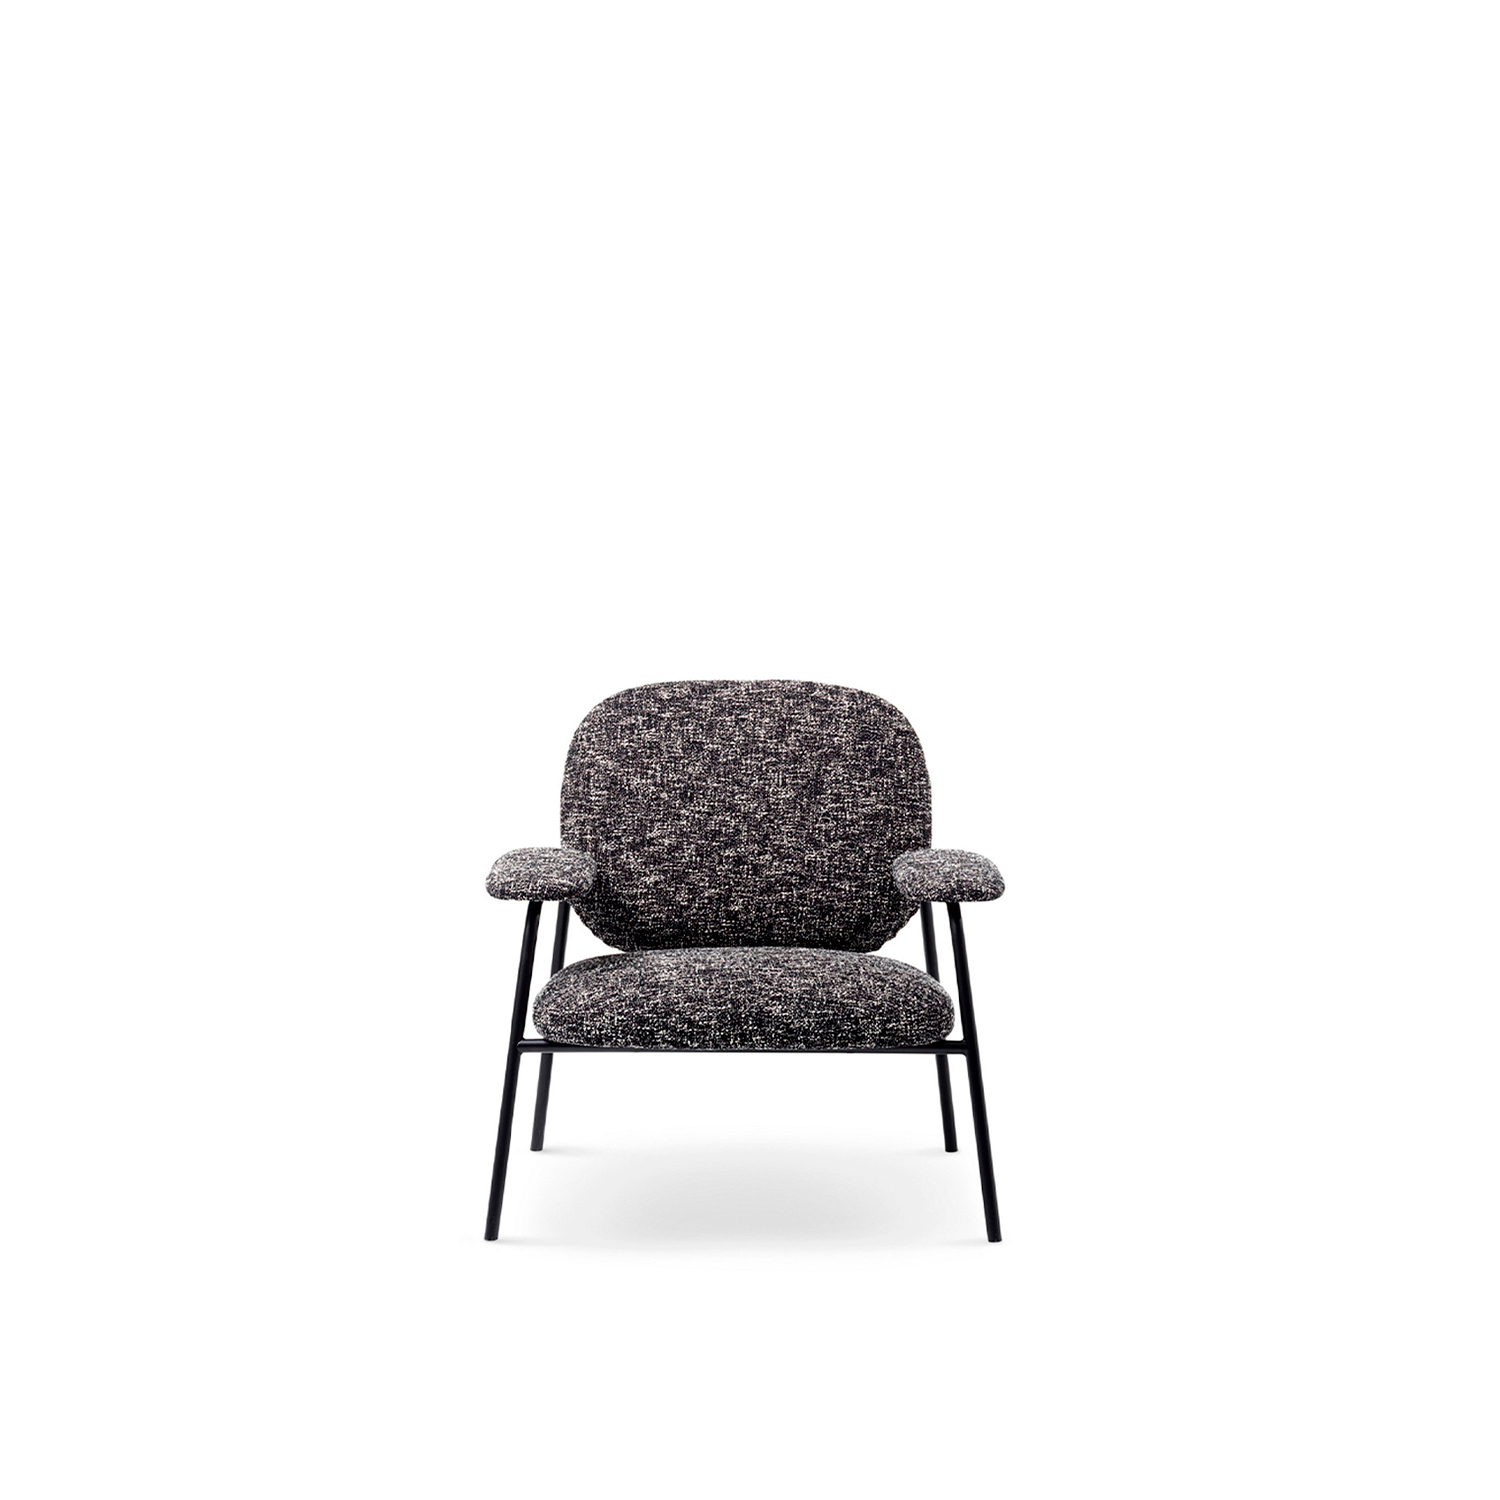 Philo Lounge Armchair  - Philo is a prefix of Greek origins that indicates love, propensity and empathy towards people and things.‎ A metallic thread draws together a welcoming silhouette; it runs, turns, comes up and goes down, hugging and delicately supporting the upholstered surfaces.‎ The agile dimensions give life to a seating system capable of existing in different spaces: home, offices and in places of meeting in general – of welcome and for relationship building.‎ Philanthropic by nature this elegant and simple sofa has a lean yet grounded honest form.‎ The design's character is communicated with an interplay of lines and colours.‎ The metallic thread transforms into sewing thread and continues on to weft and warp creating a singular harmony.‎